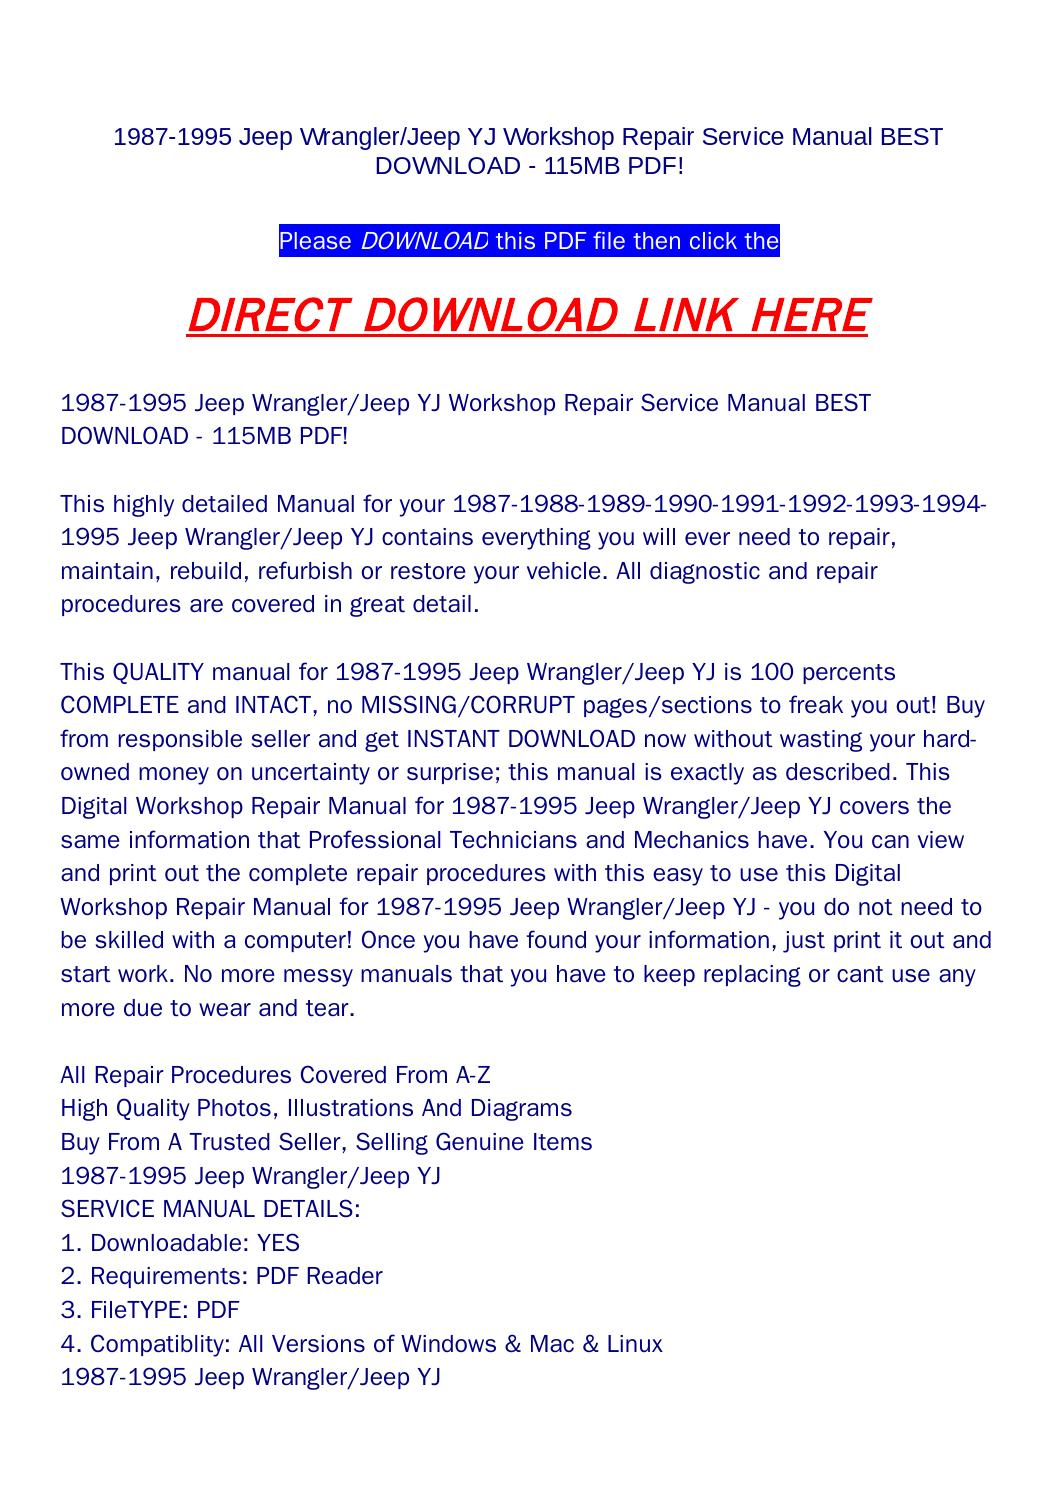 hight resolution of 1987 1995 jeep wrangler jeep yj workshop repair service manual best download 115mb pdf